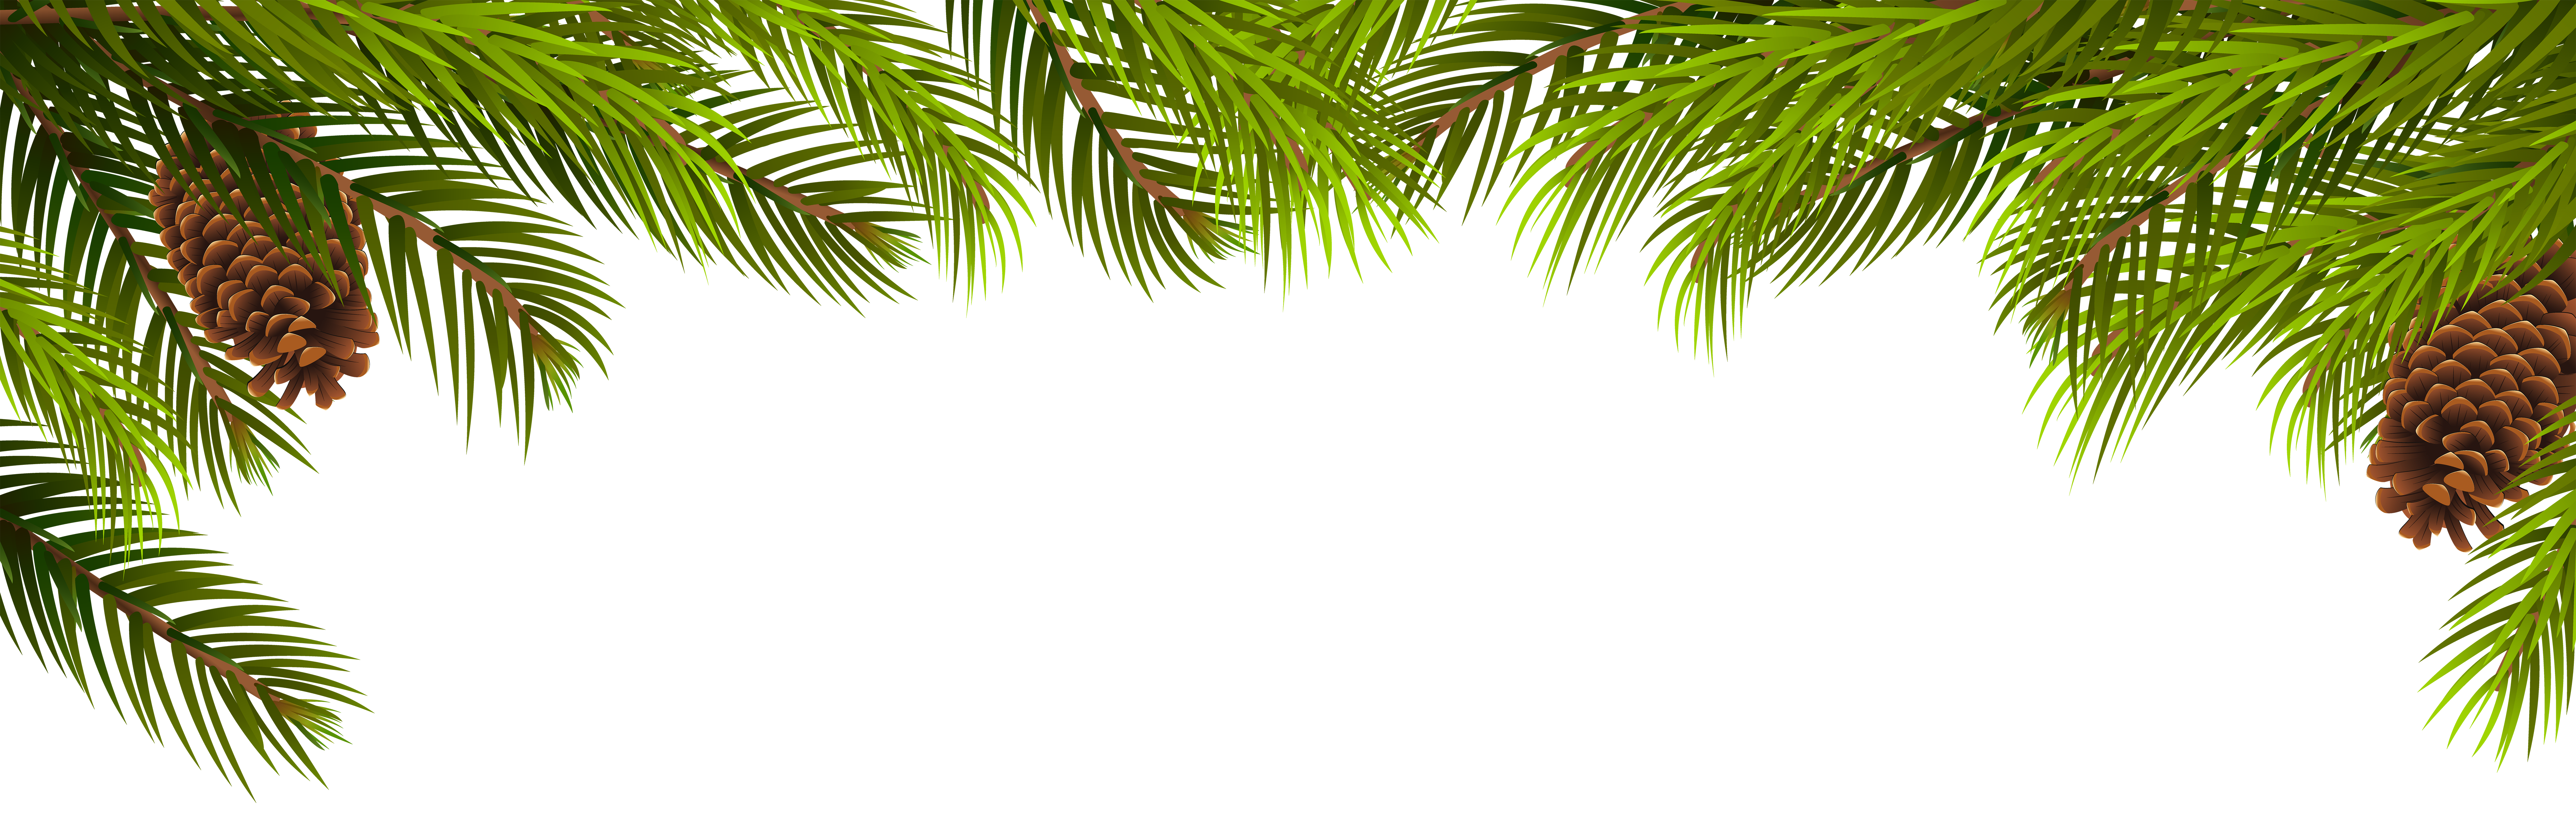 Palm clipart green branch. Pine branches and cones